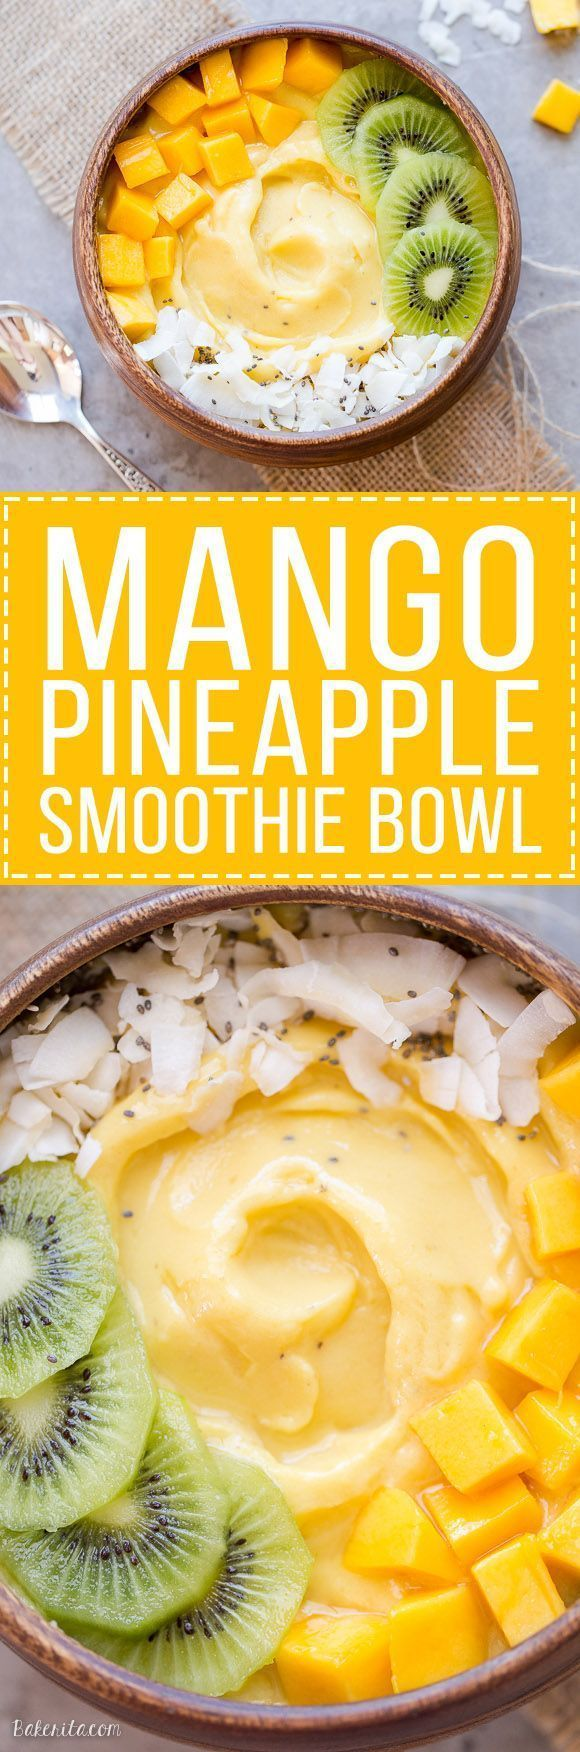 This Mango Pineapple Smoothie Bowl brings the tropics to your breakfast bowl! Customize the toppings on this ultra refreshing & healthy smoothie bowl for your ideal breakfast or snack. http://juicerblendercenter.com/choosing-between-a-masticating-or-a-centrifugal-juicer/